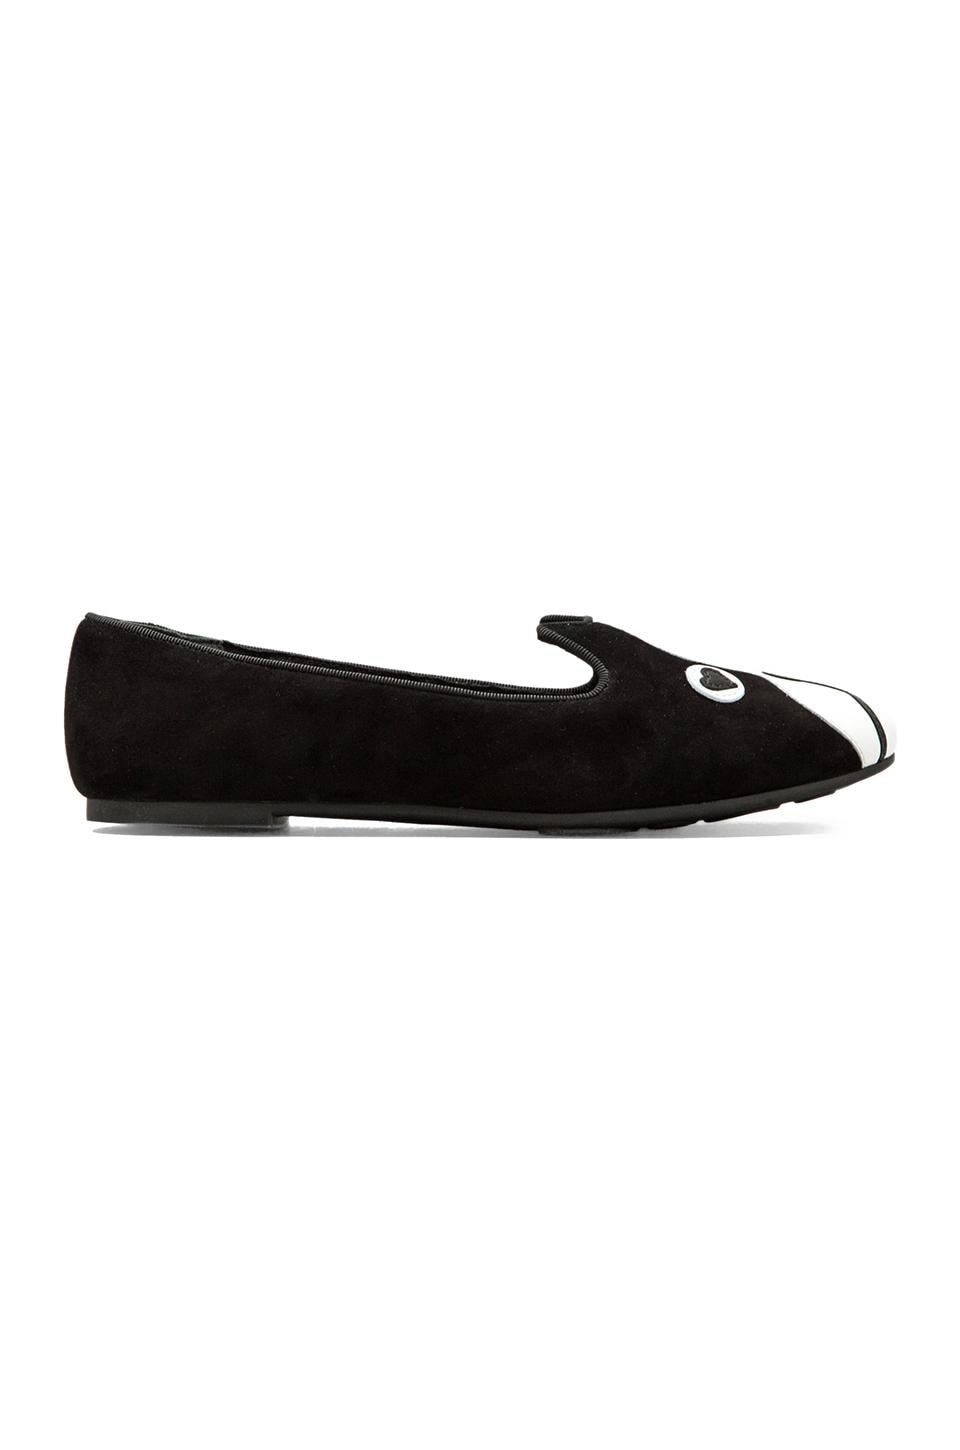 Marc by Marc Jacobs Friends of Mine Suede Slipper in Black